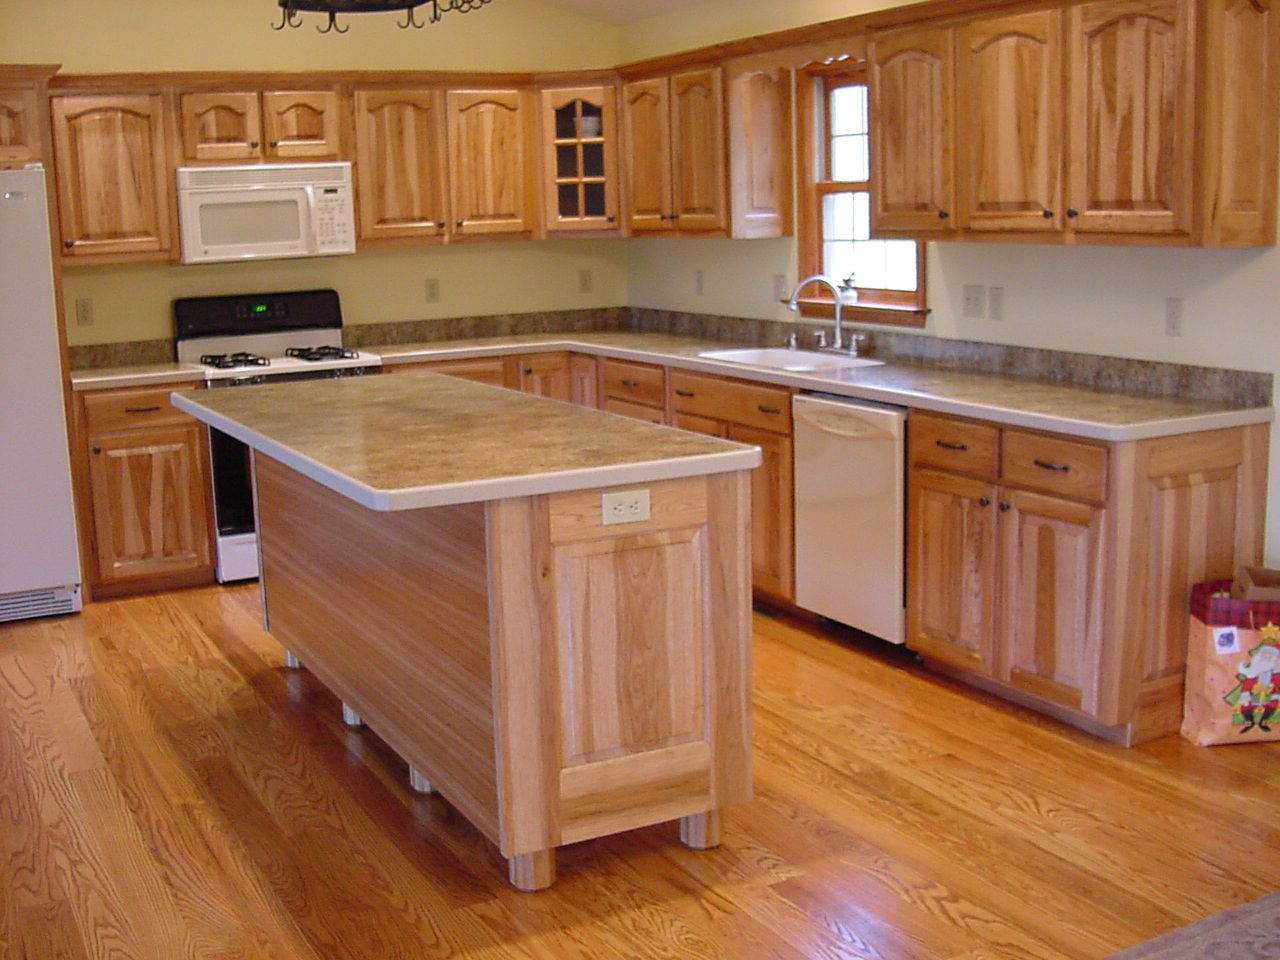 Countertops laminate countertops with decorative wood edge new condo paint designs Kitchen countertop choices